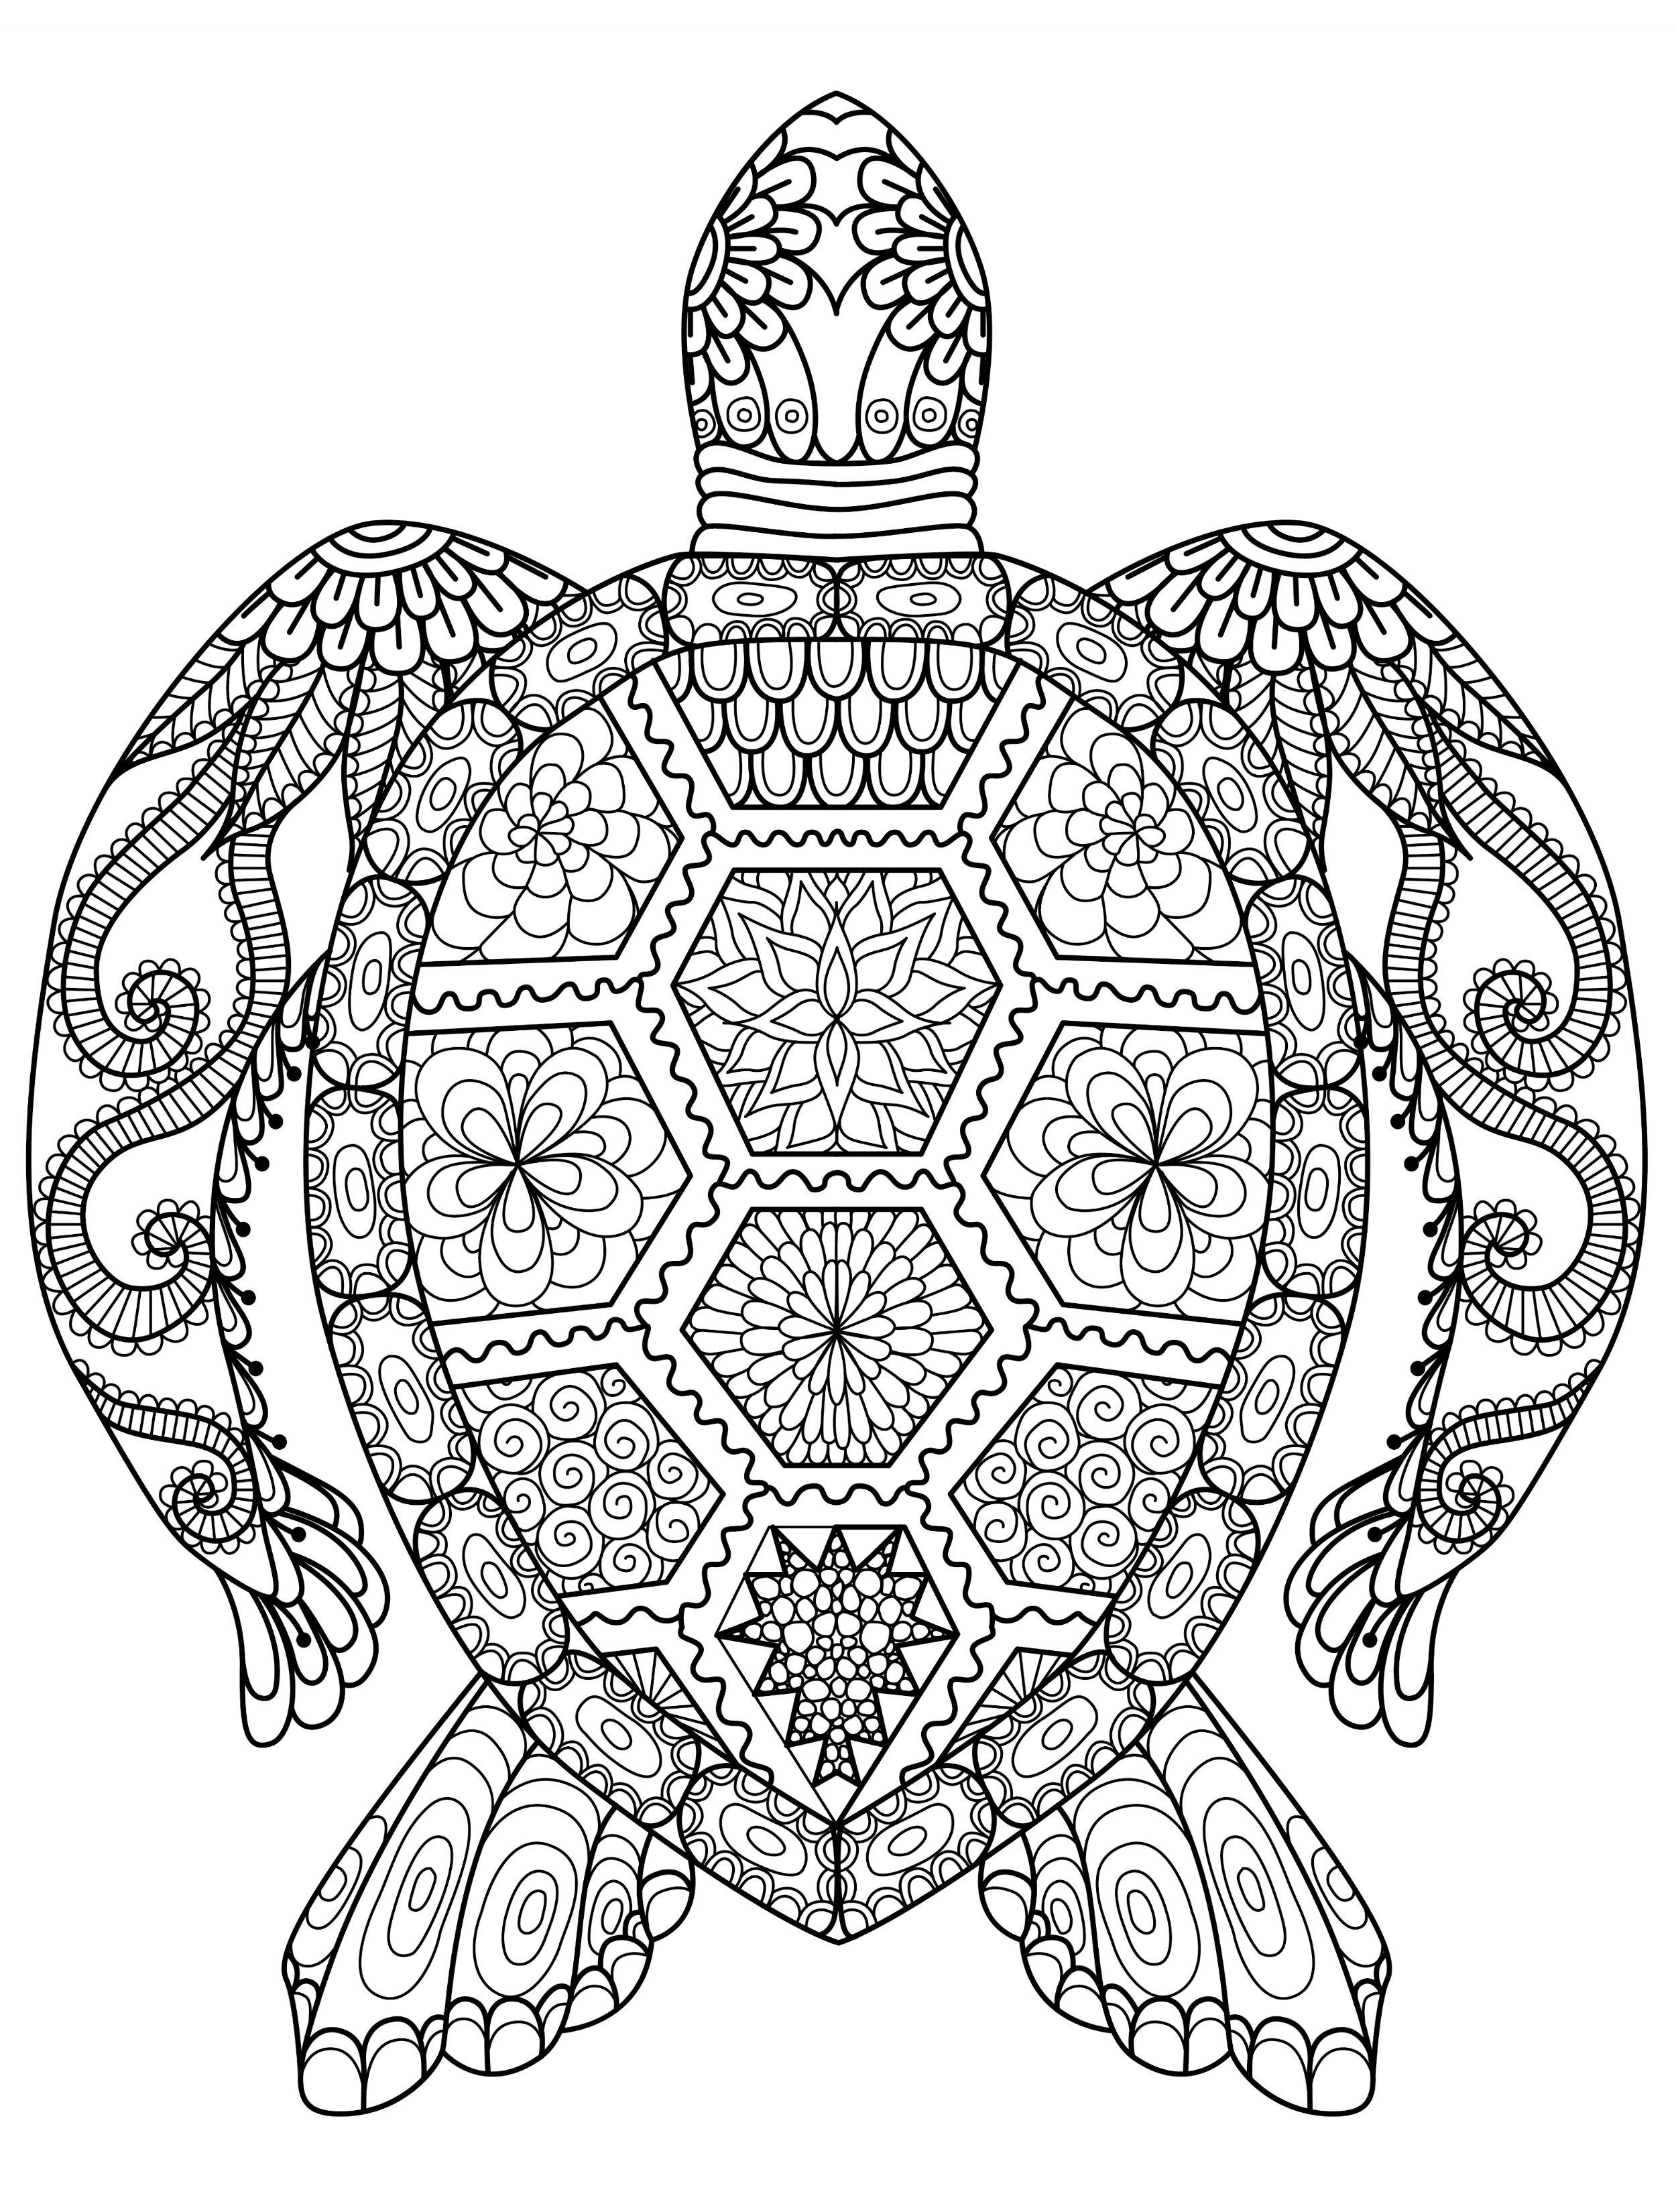 20 Gorgeous Free Printable Adult Coloring Pages … | Adult Coloring ...